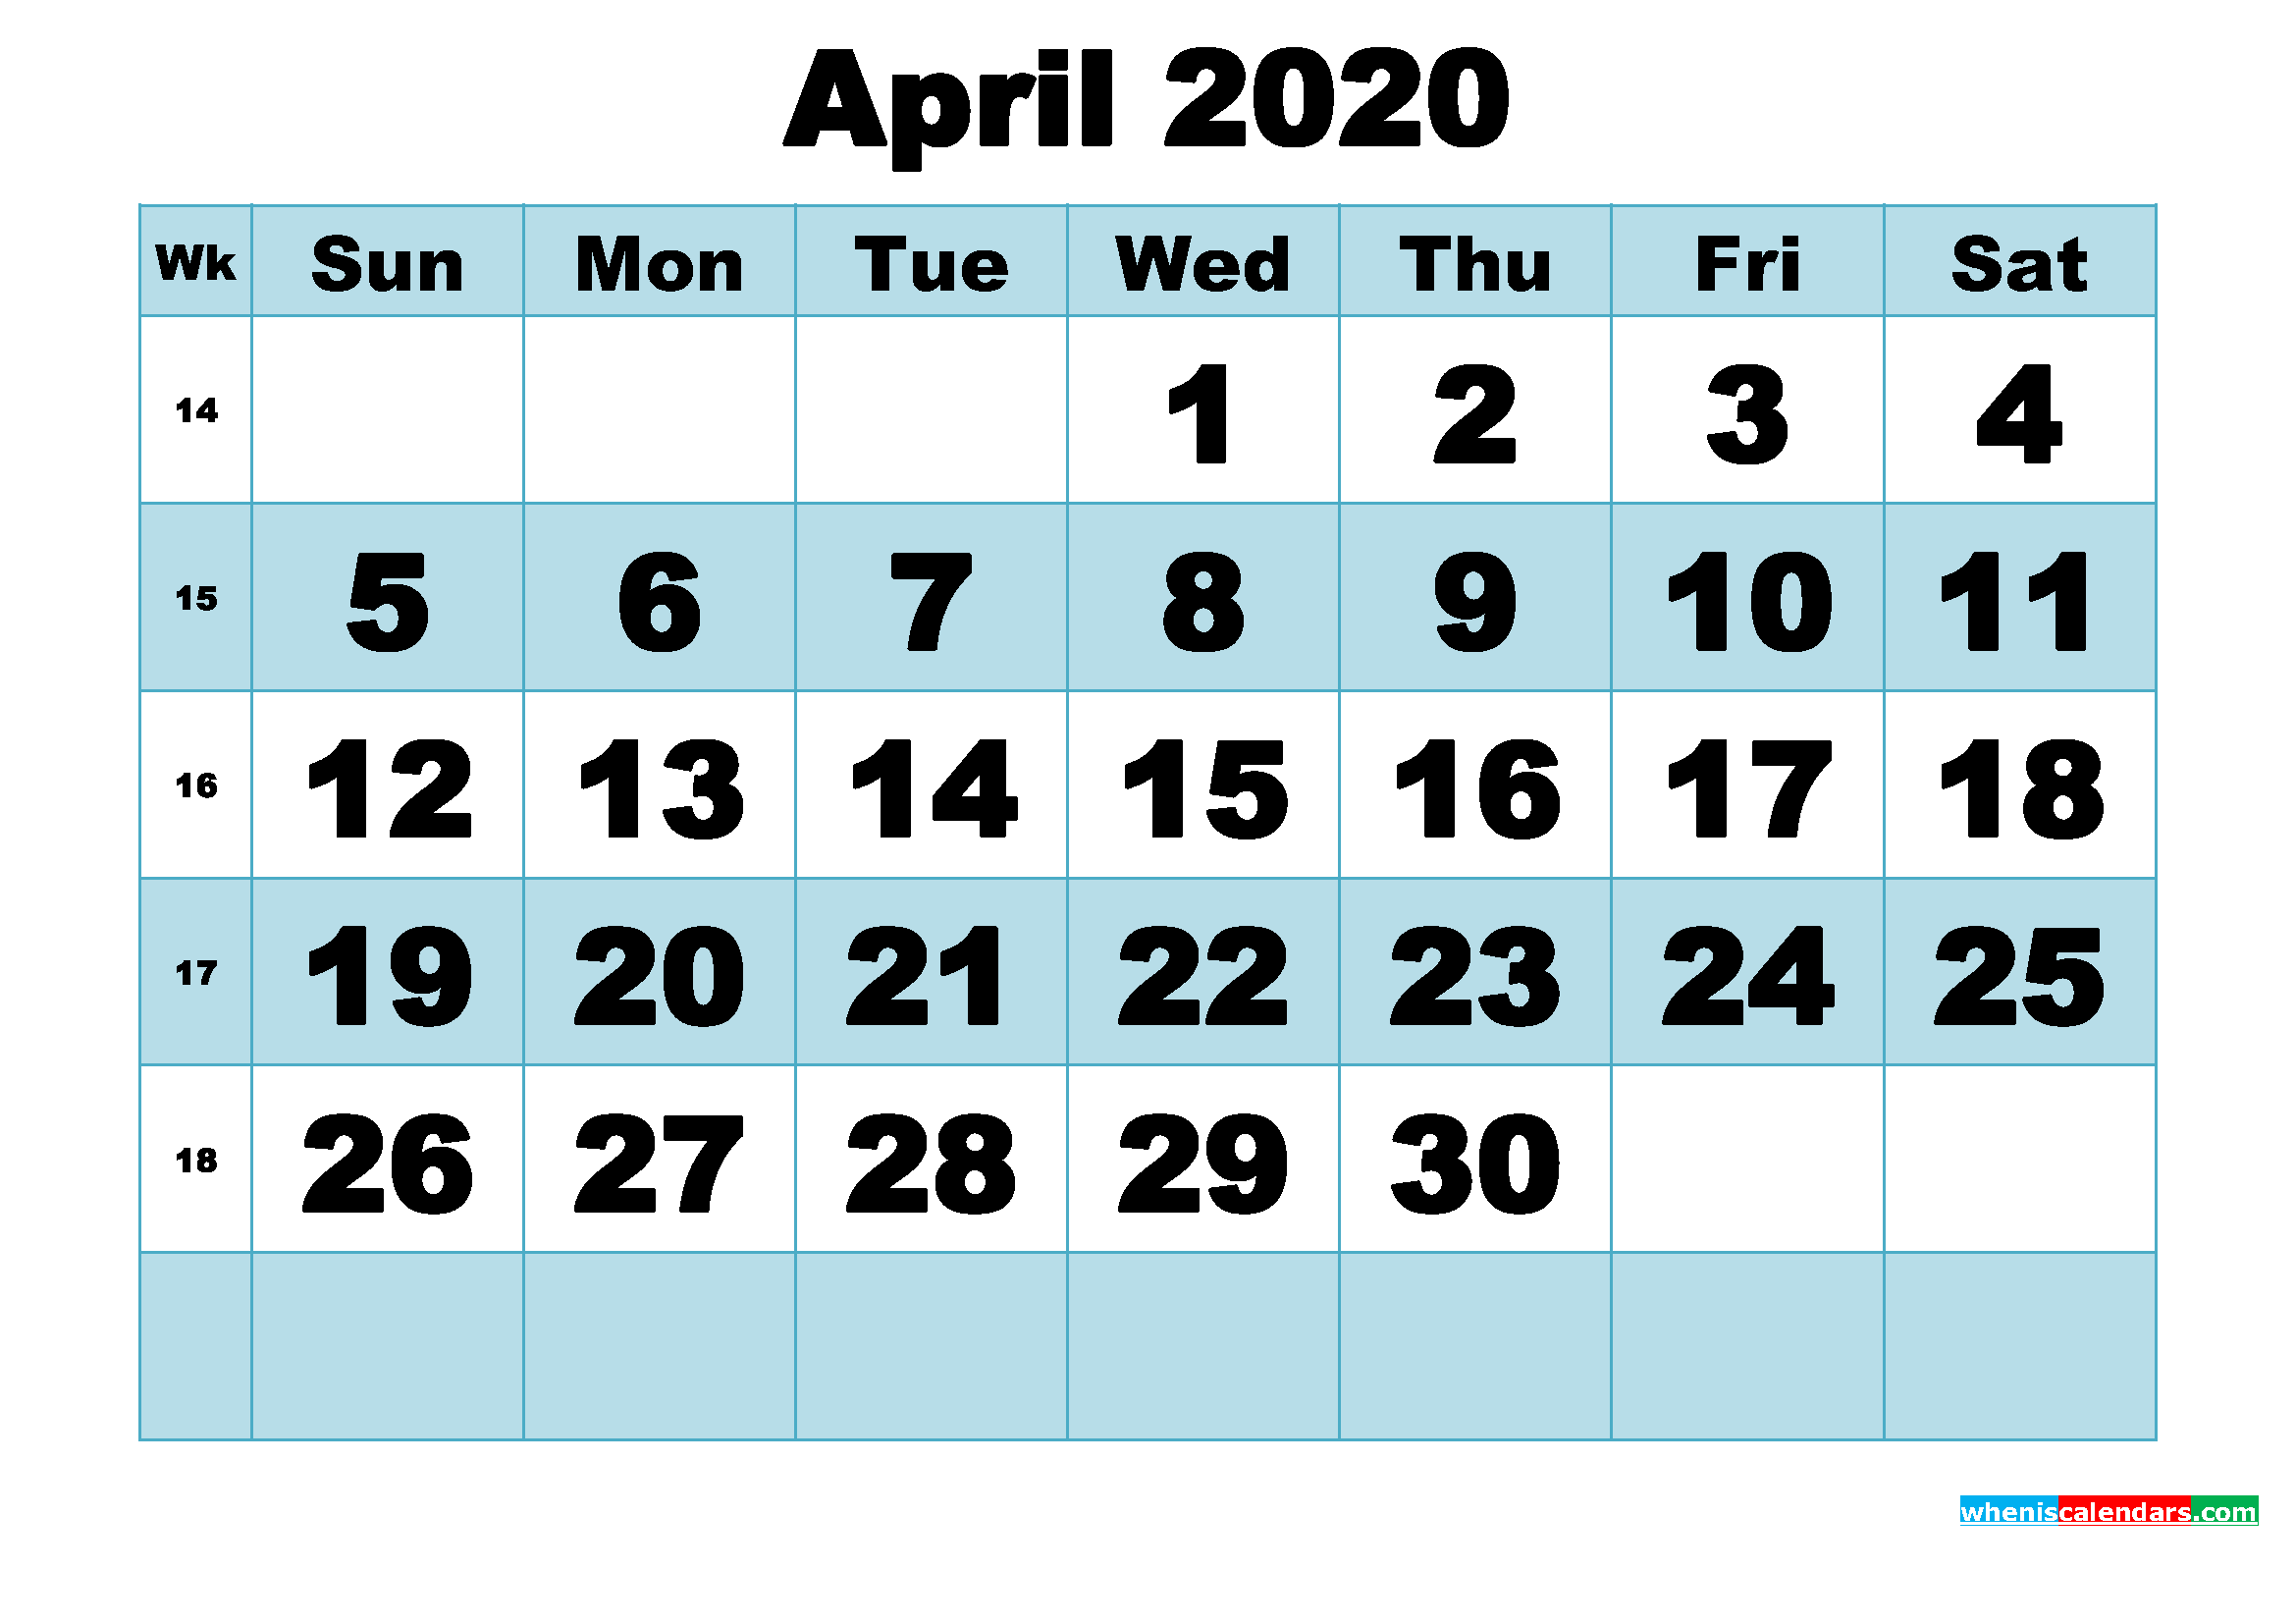 Free Printable April 2020 Calendar Word, PDF, Image